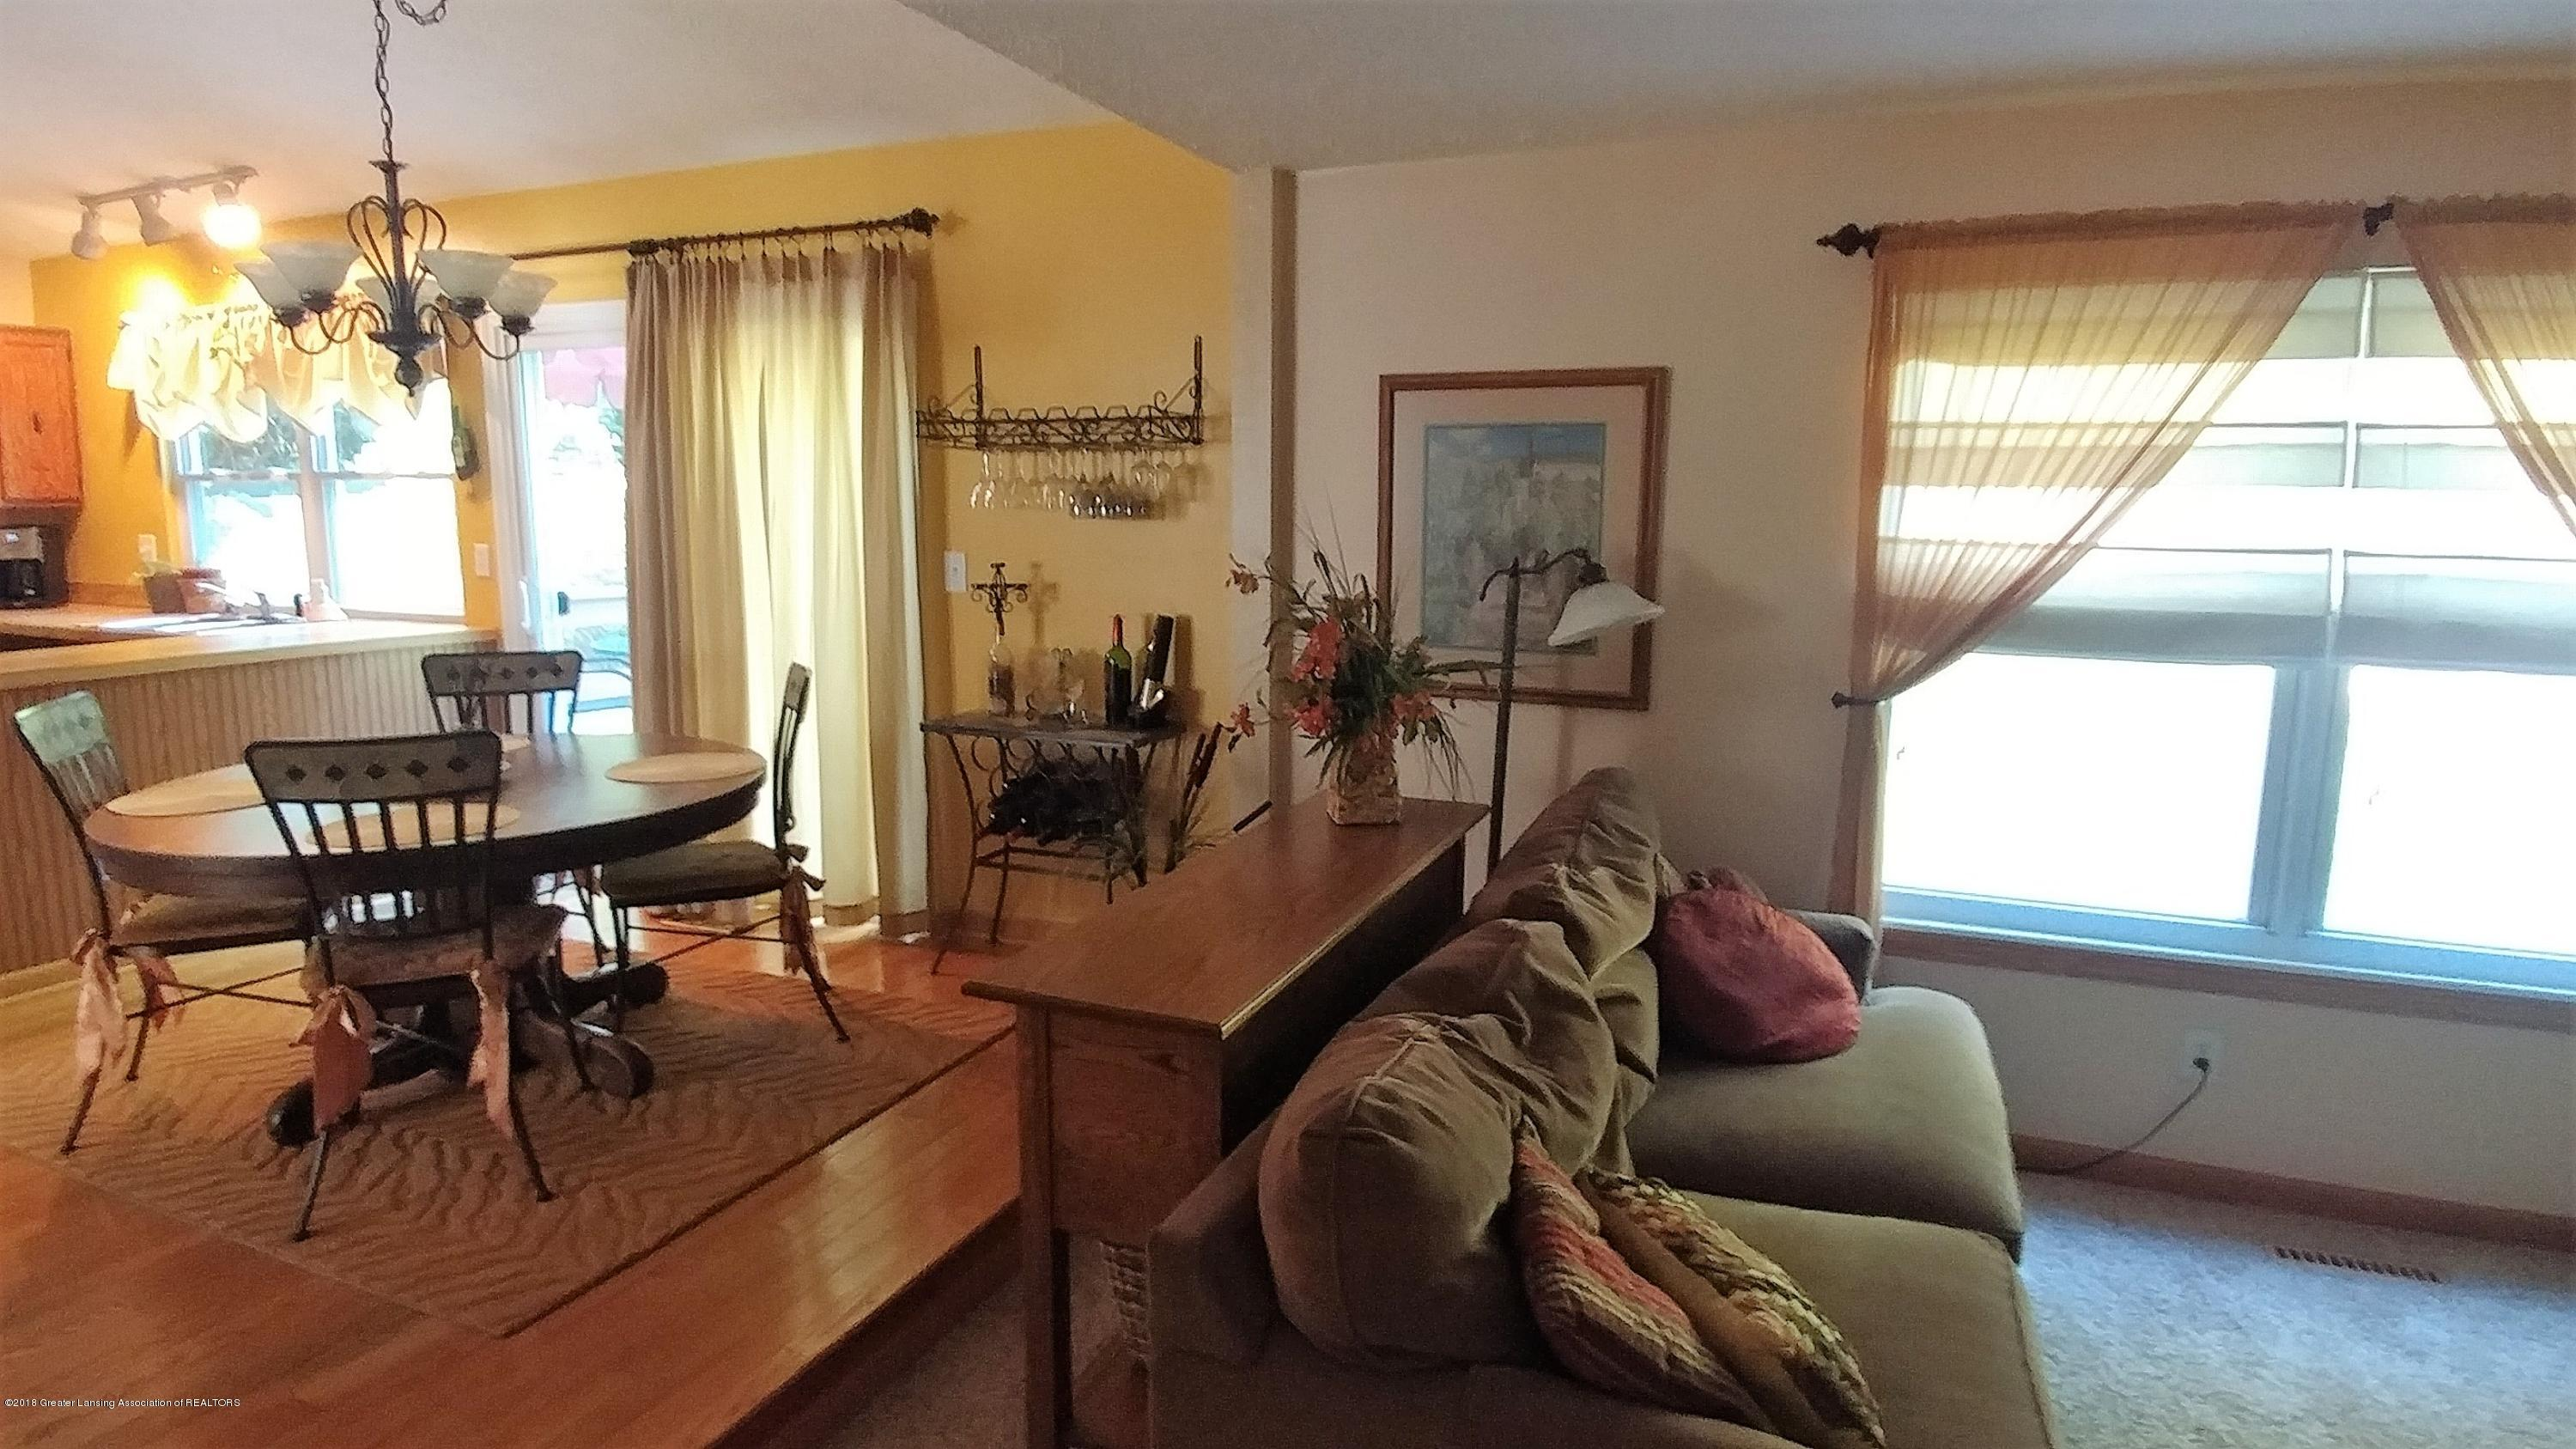 504 Chesley Dr - 6 - 6